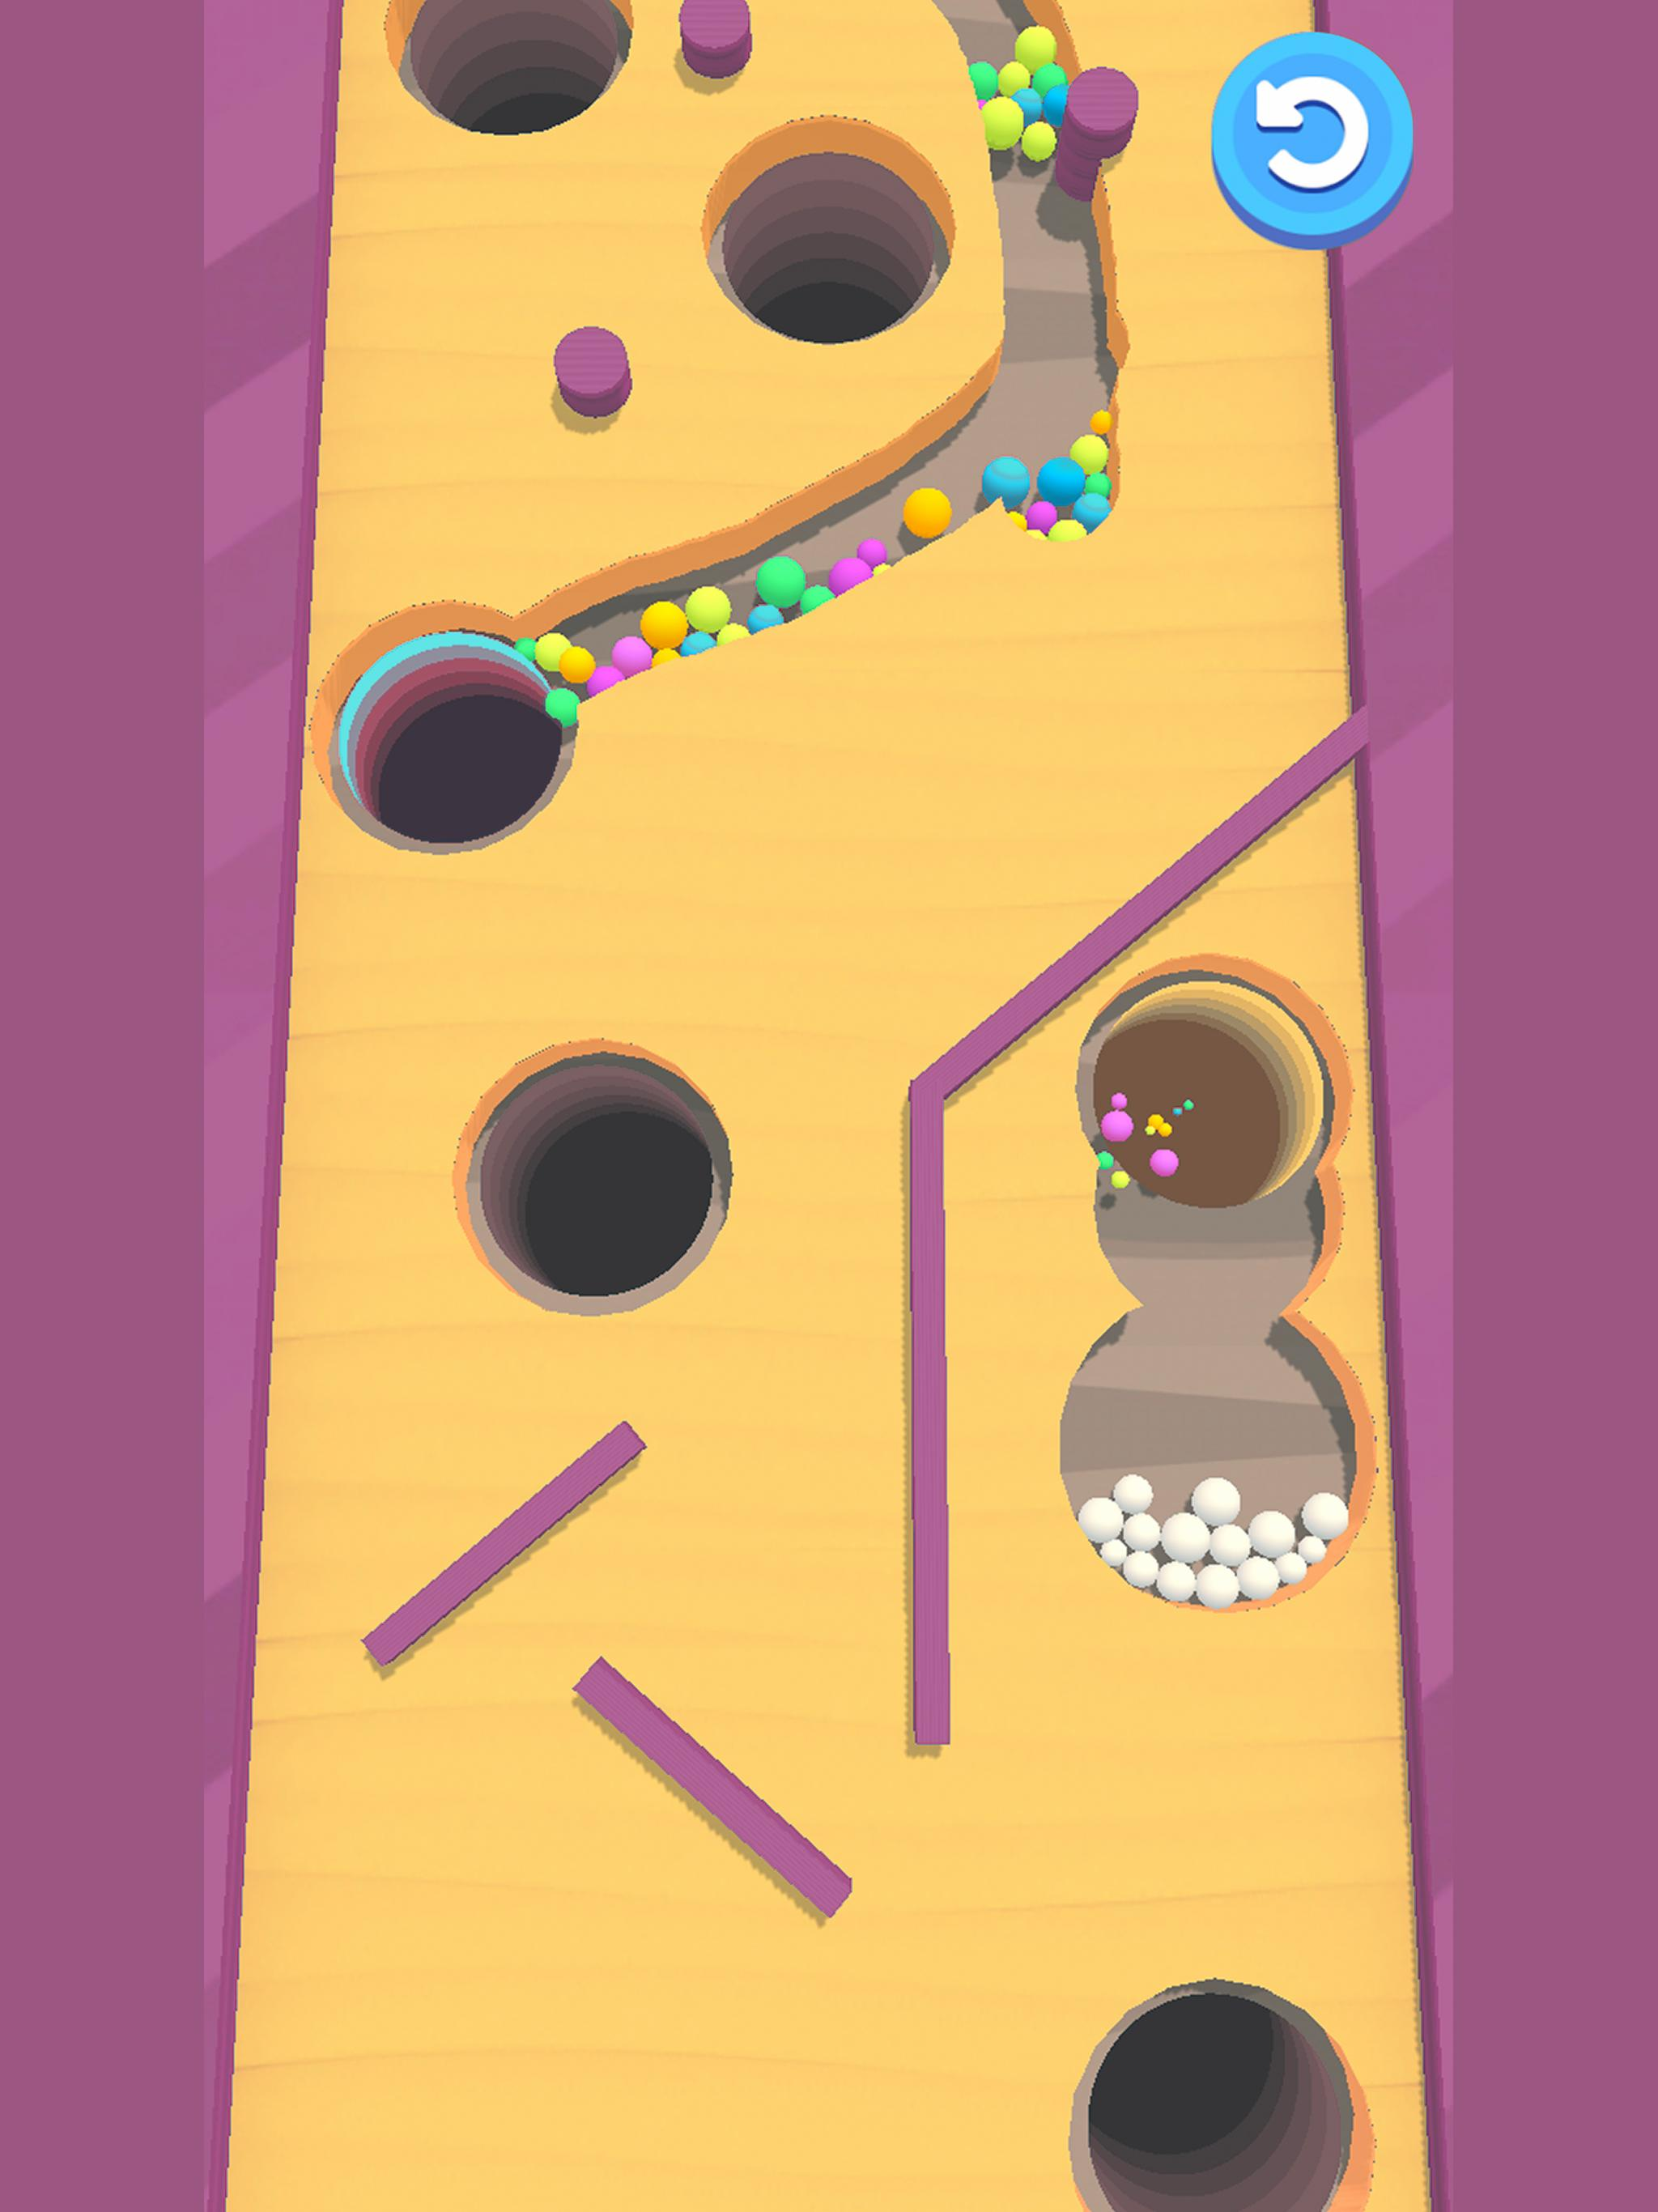 Sand Balls for Android - APK Download